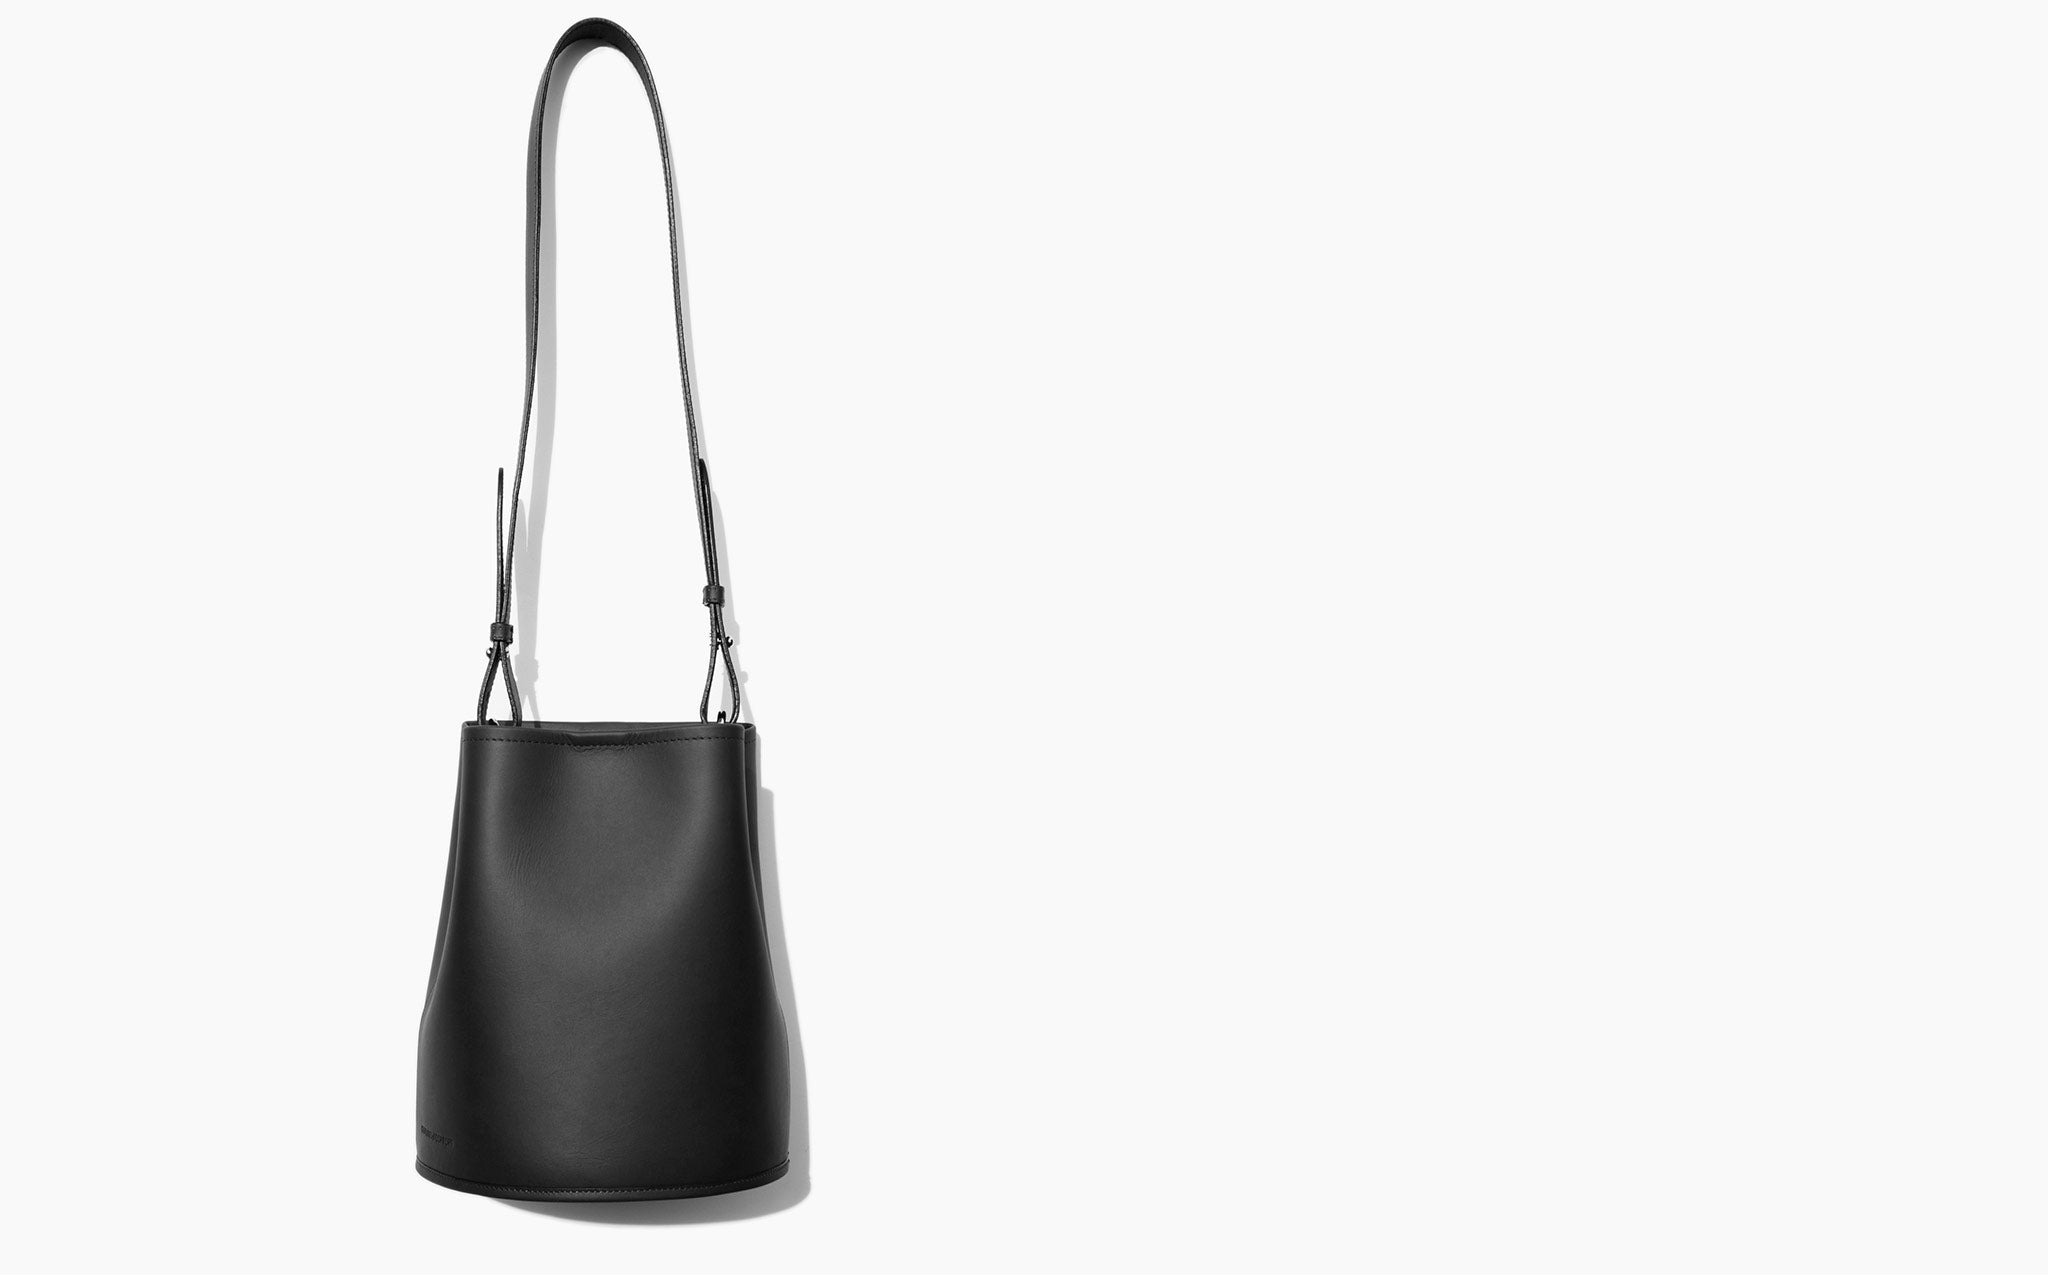 Creatures Of Comfort Black Saddle Small Bucket Bag